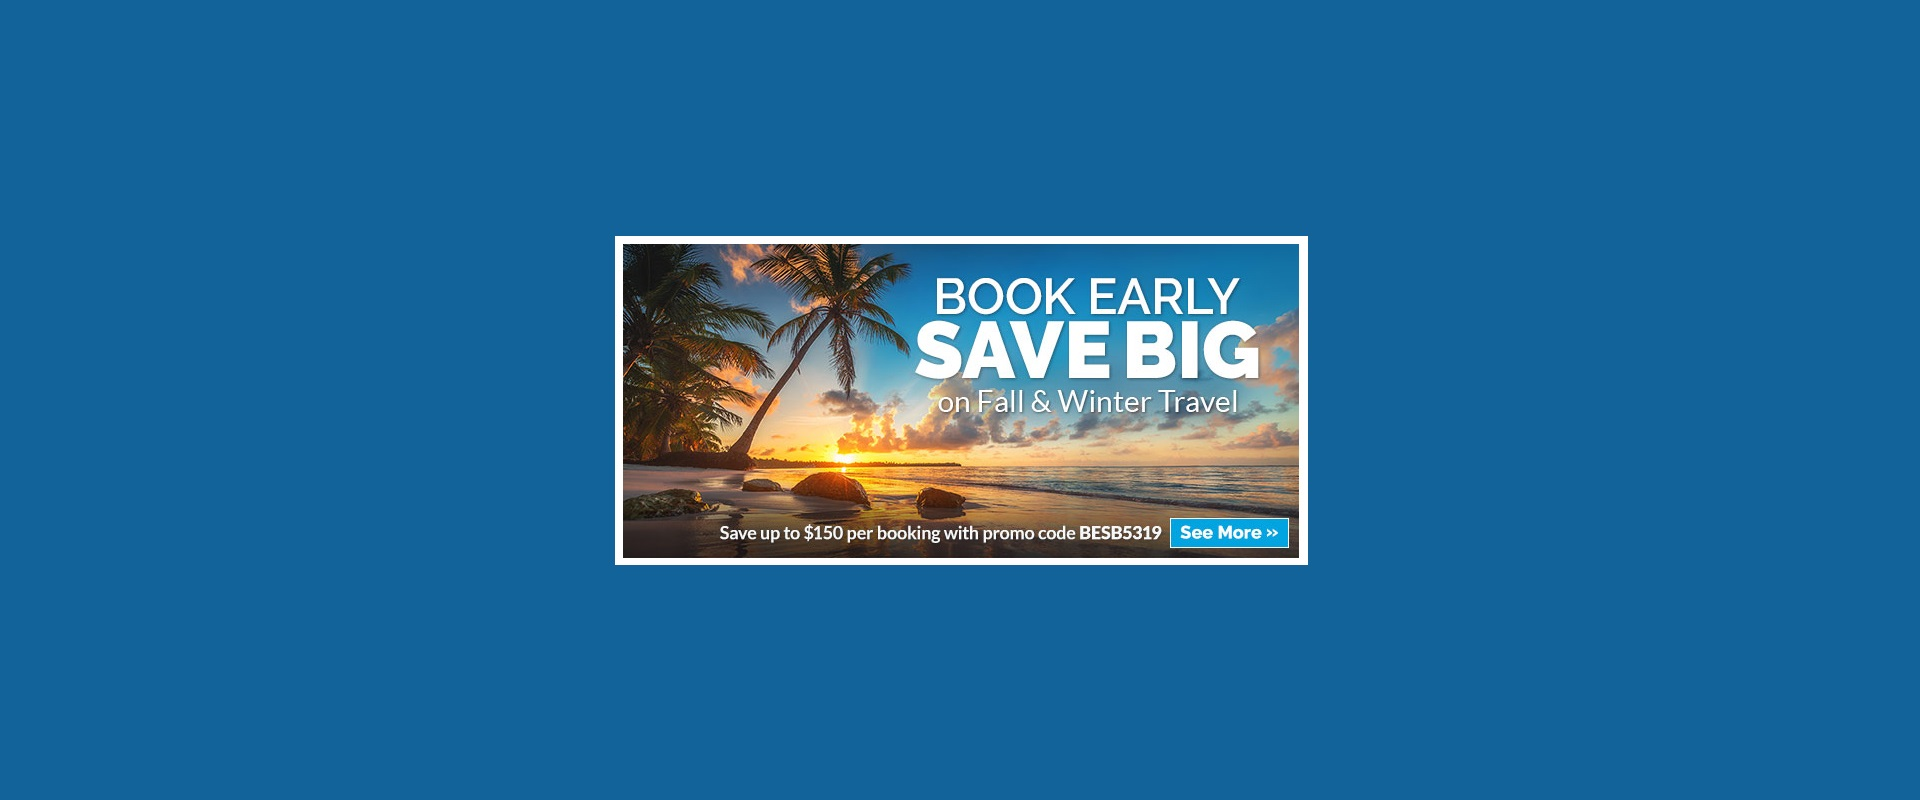 Book-Early-Save-Big-Banner